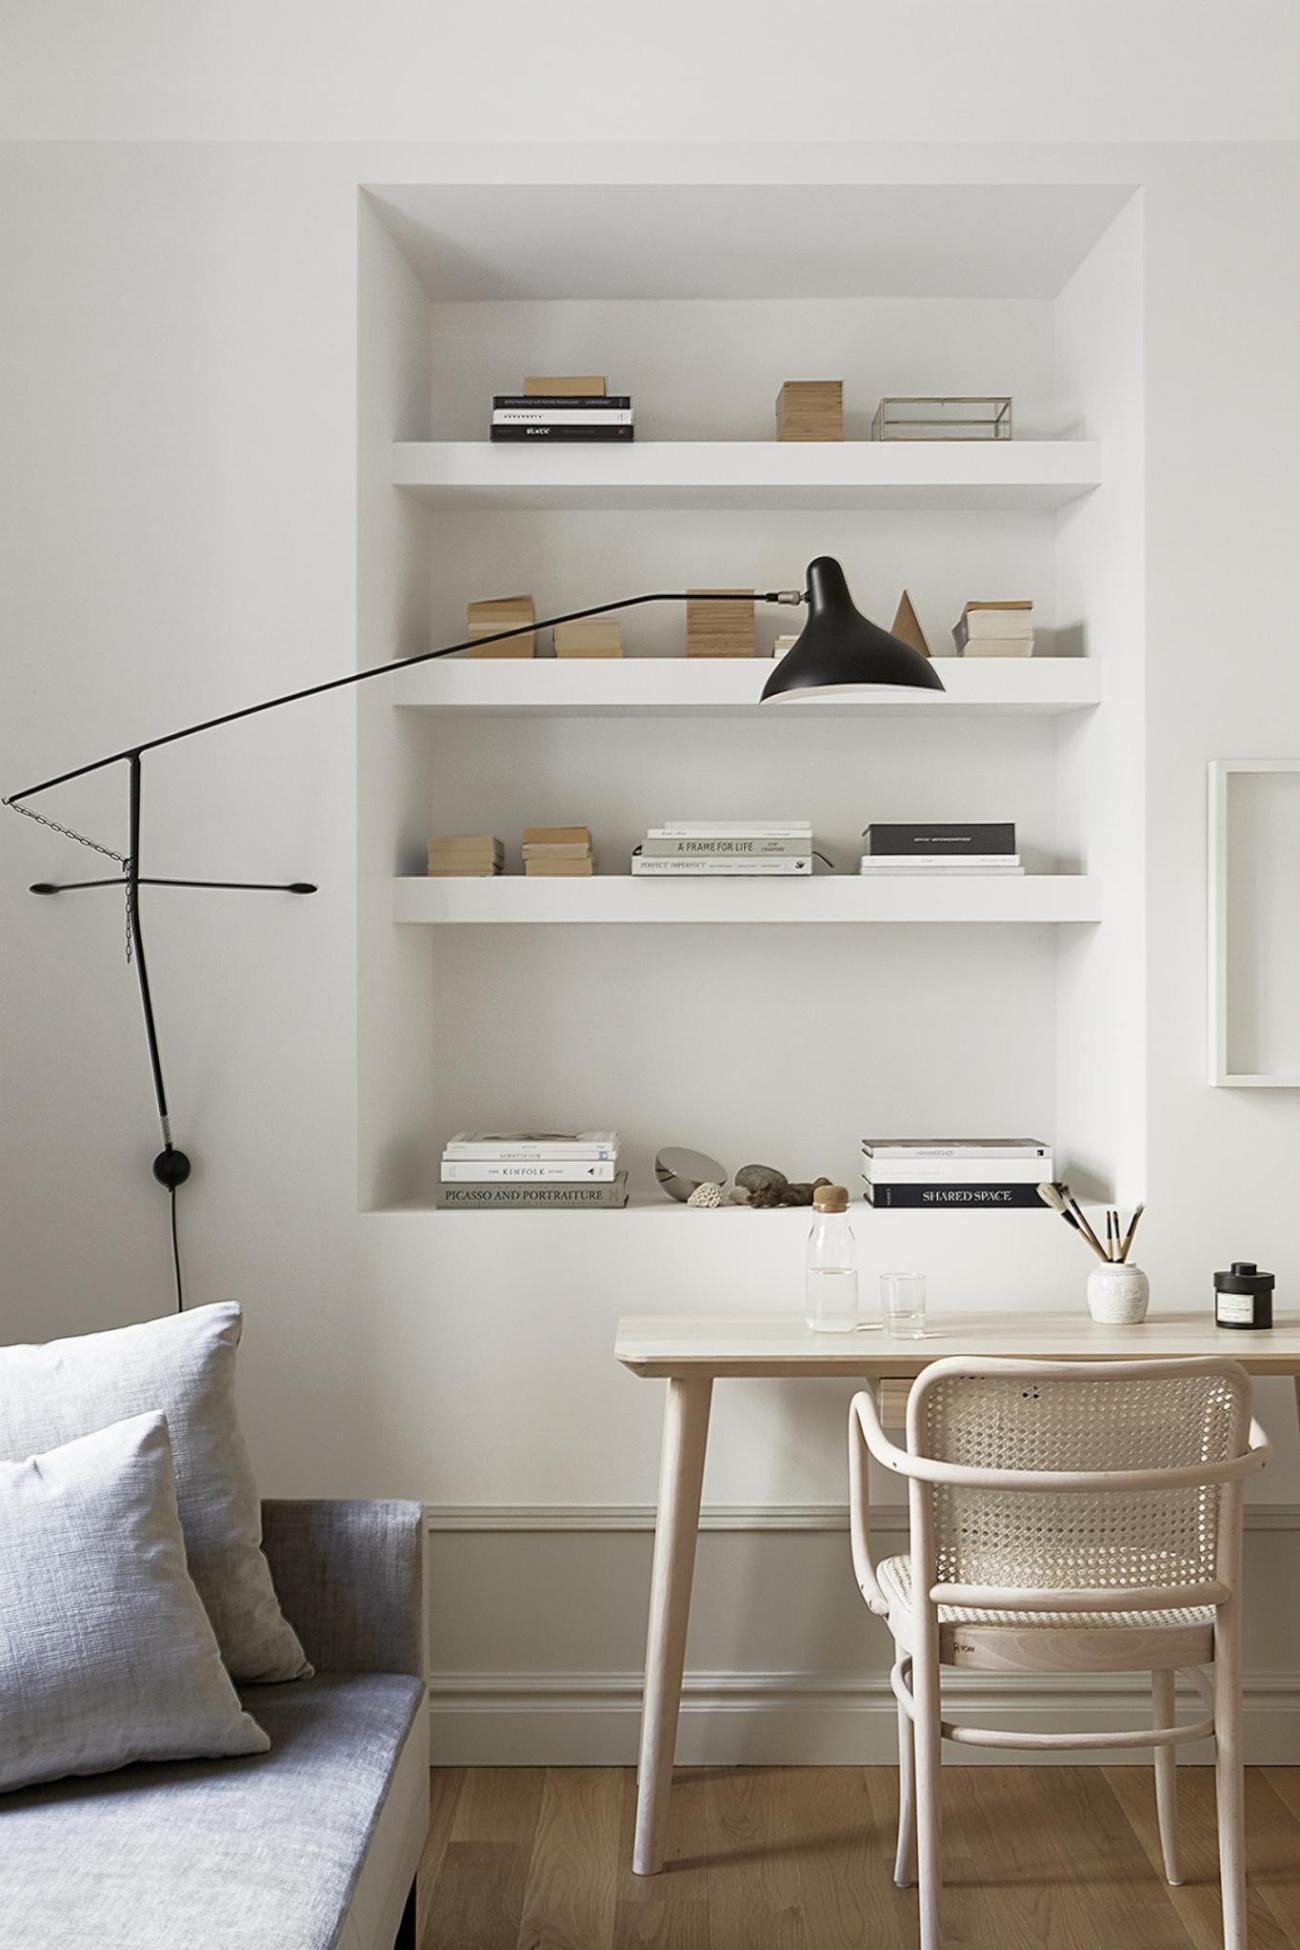 4 fundamentals you should consider when living in a small apartment